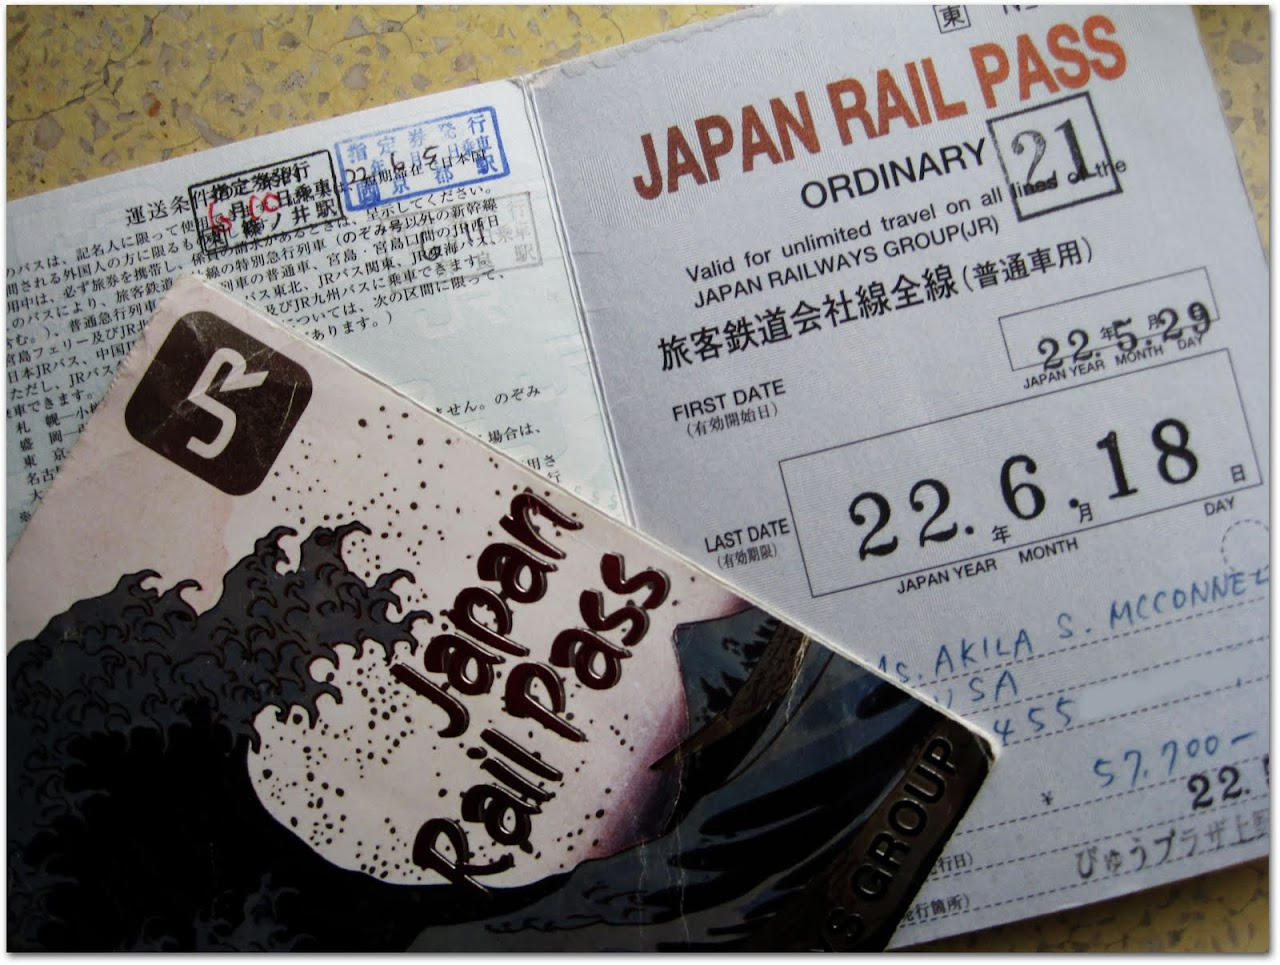 Japan Rail Pass